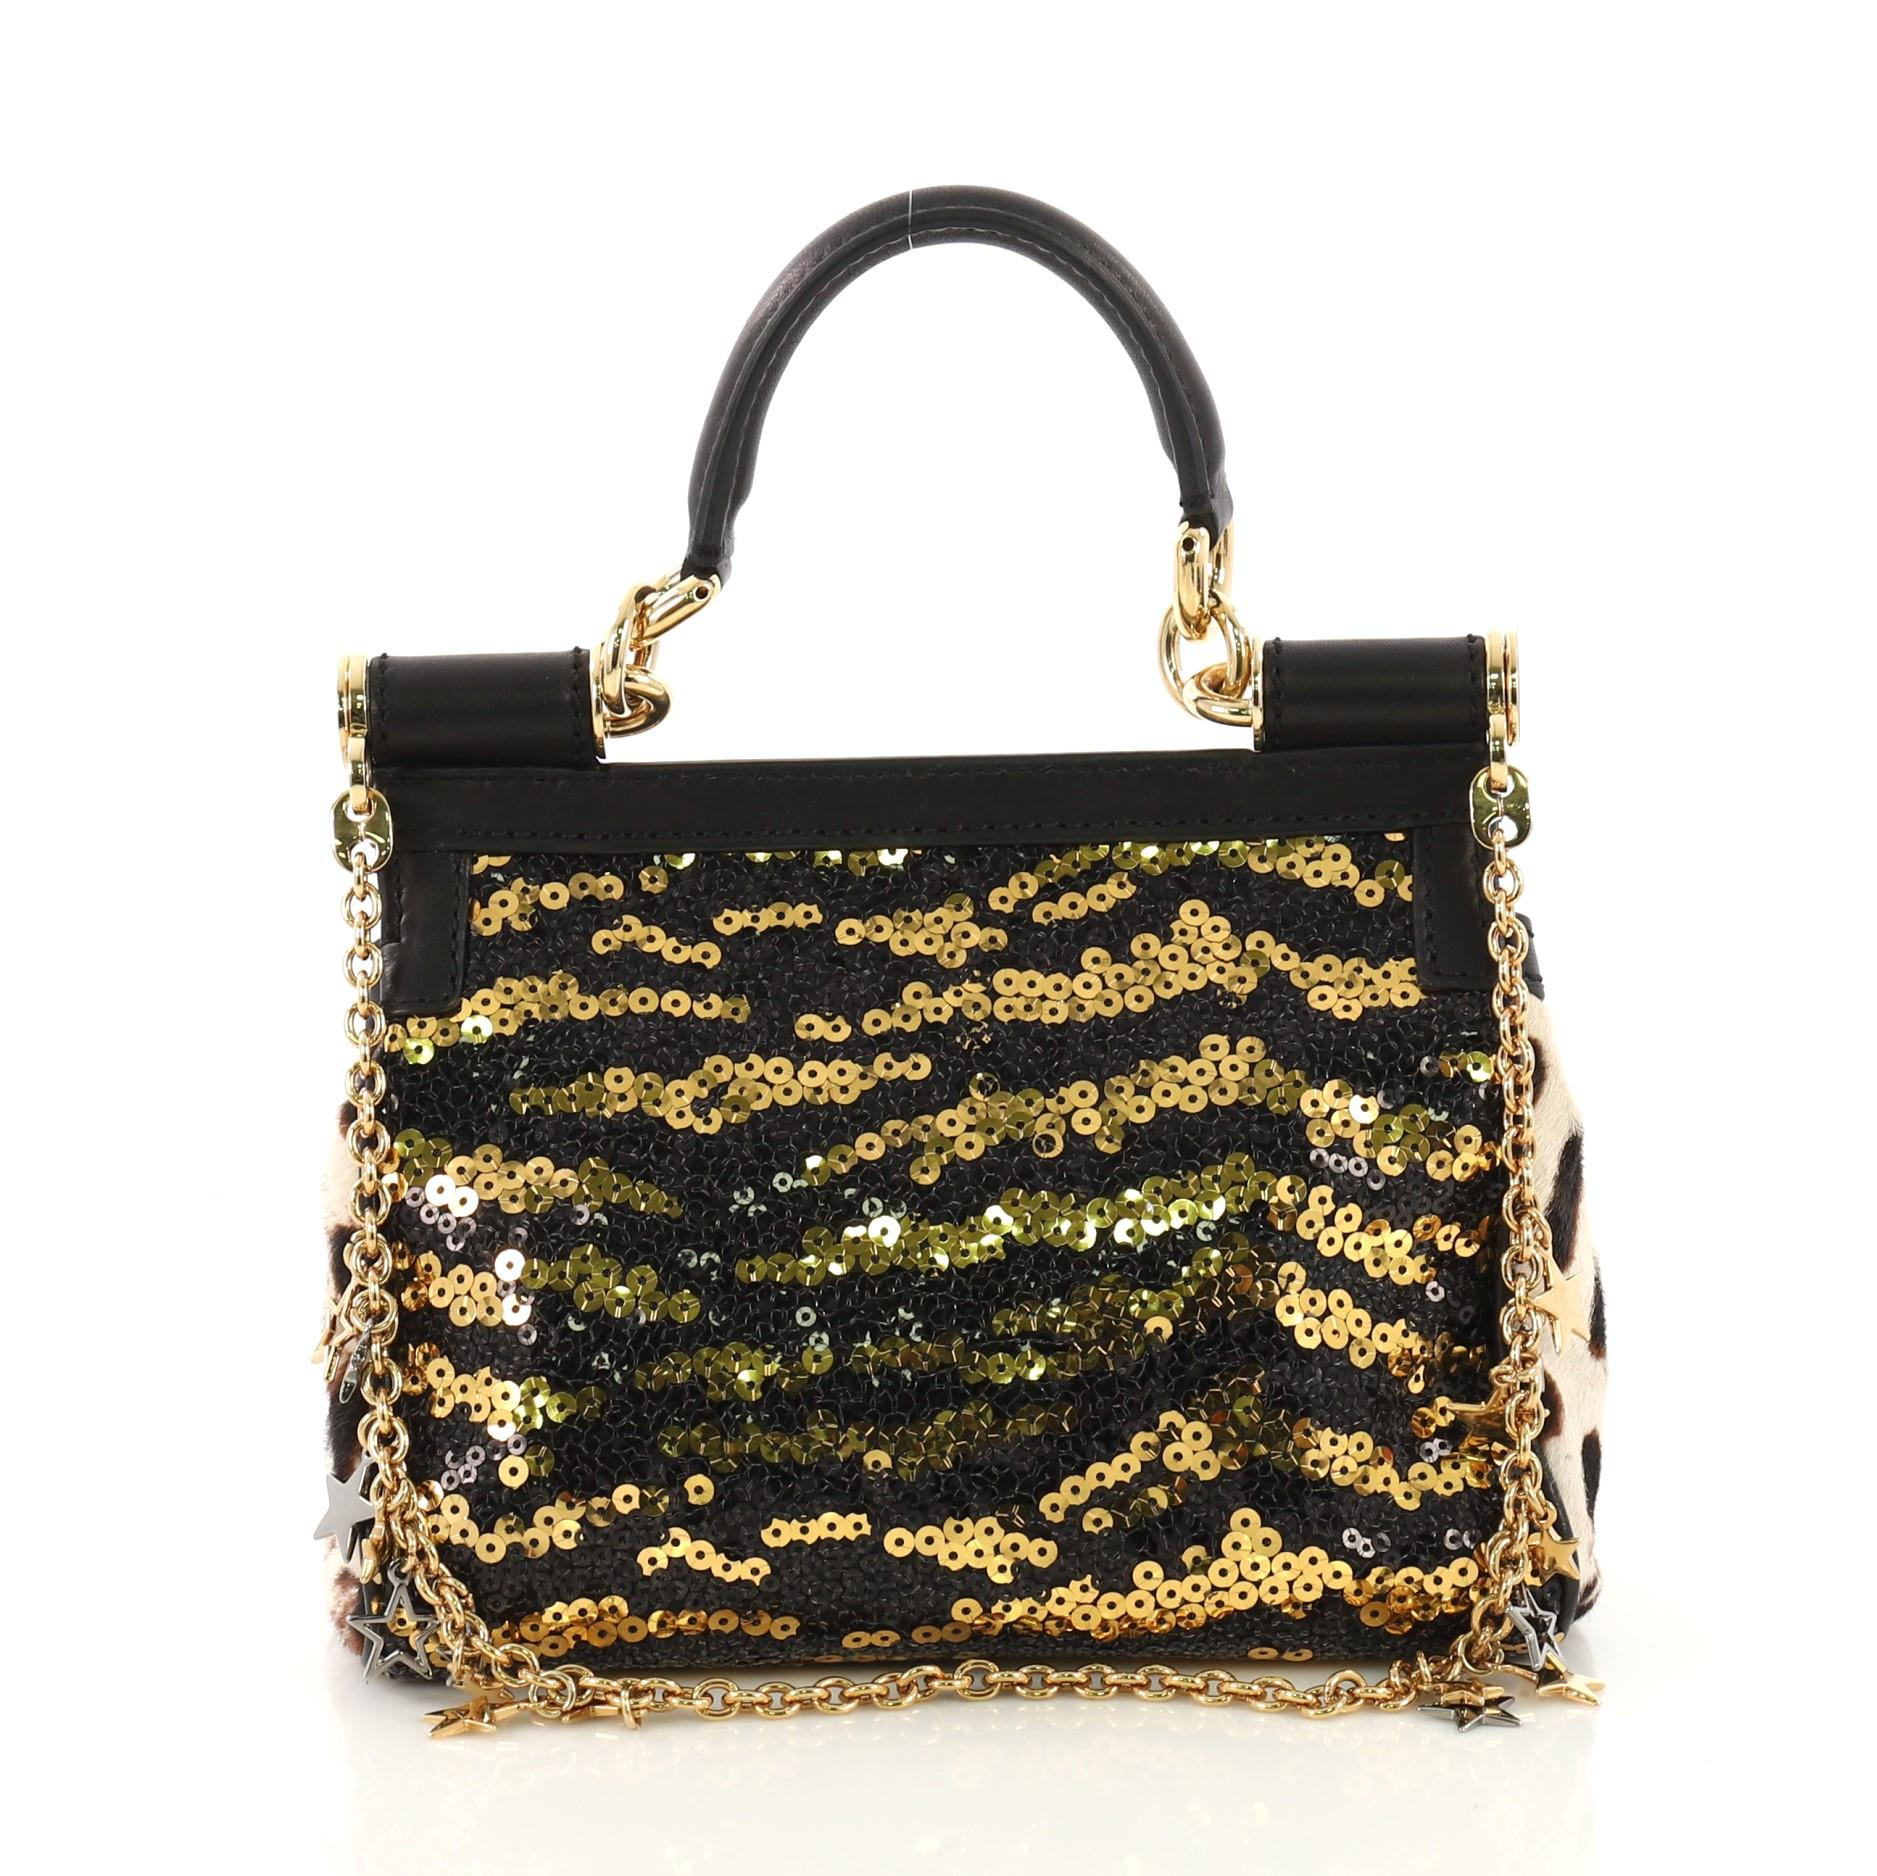 7f2e77abd6 Dolce and Gabbana Miss Sicily Handbag Sequins Small For Sale at 1stdibs